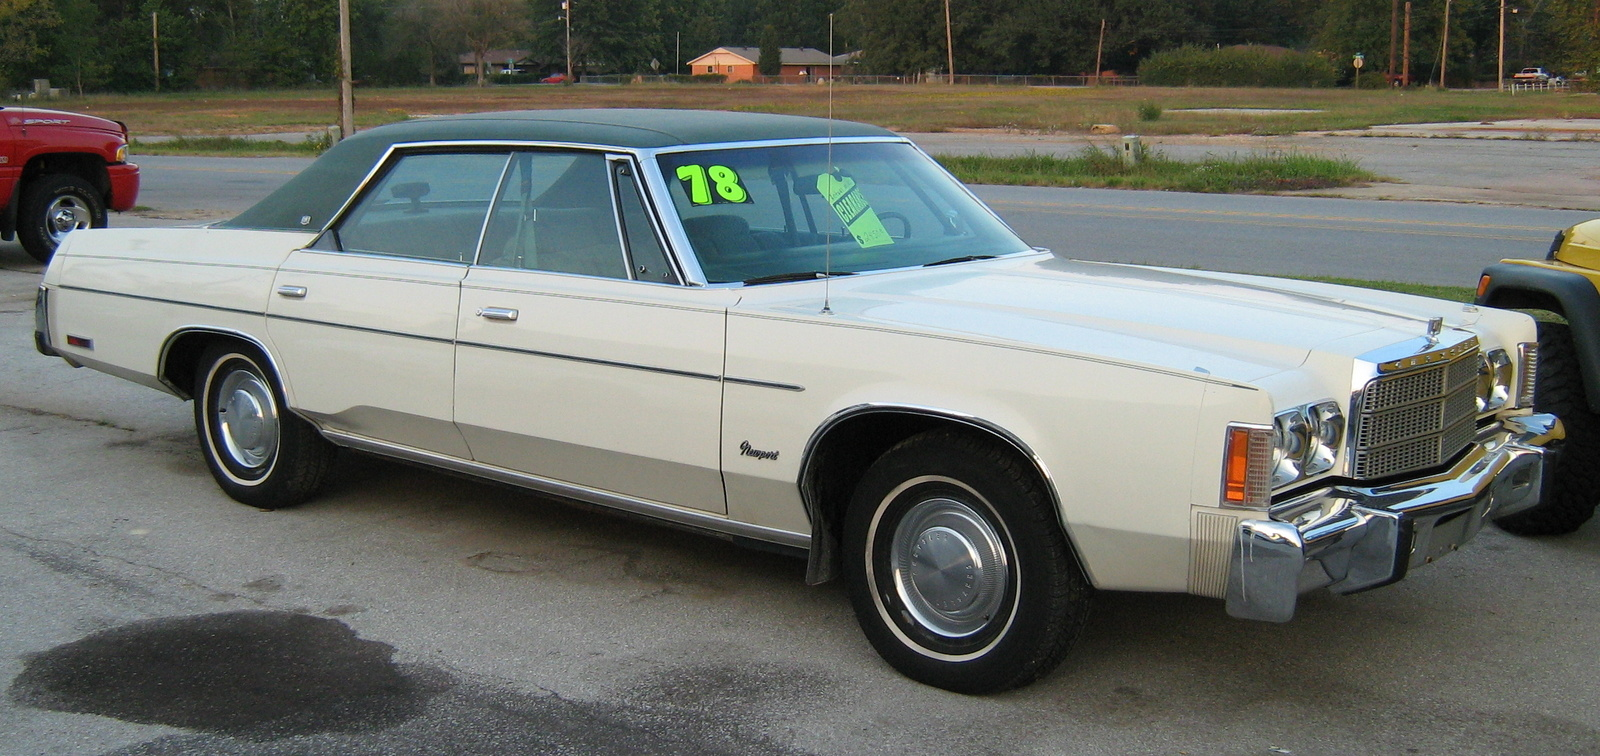 1981 Chrysler Newport #17